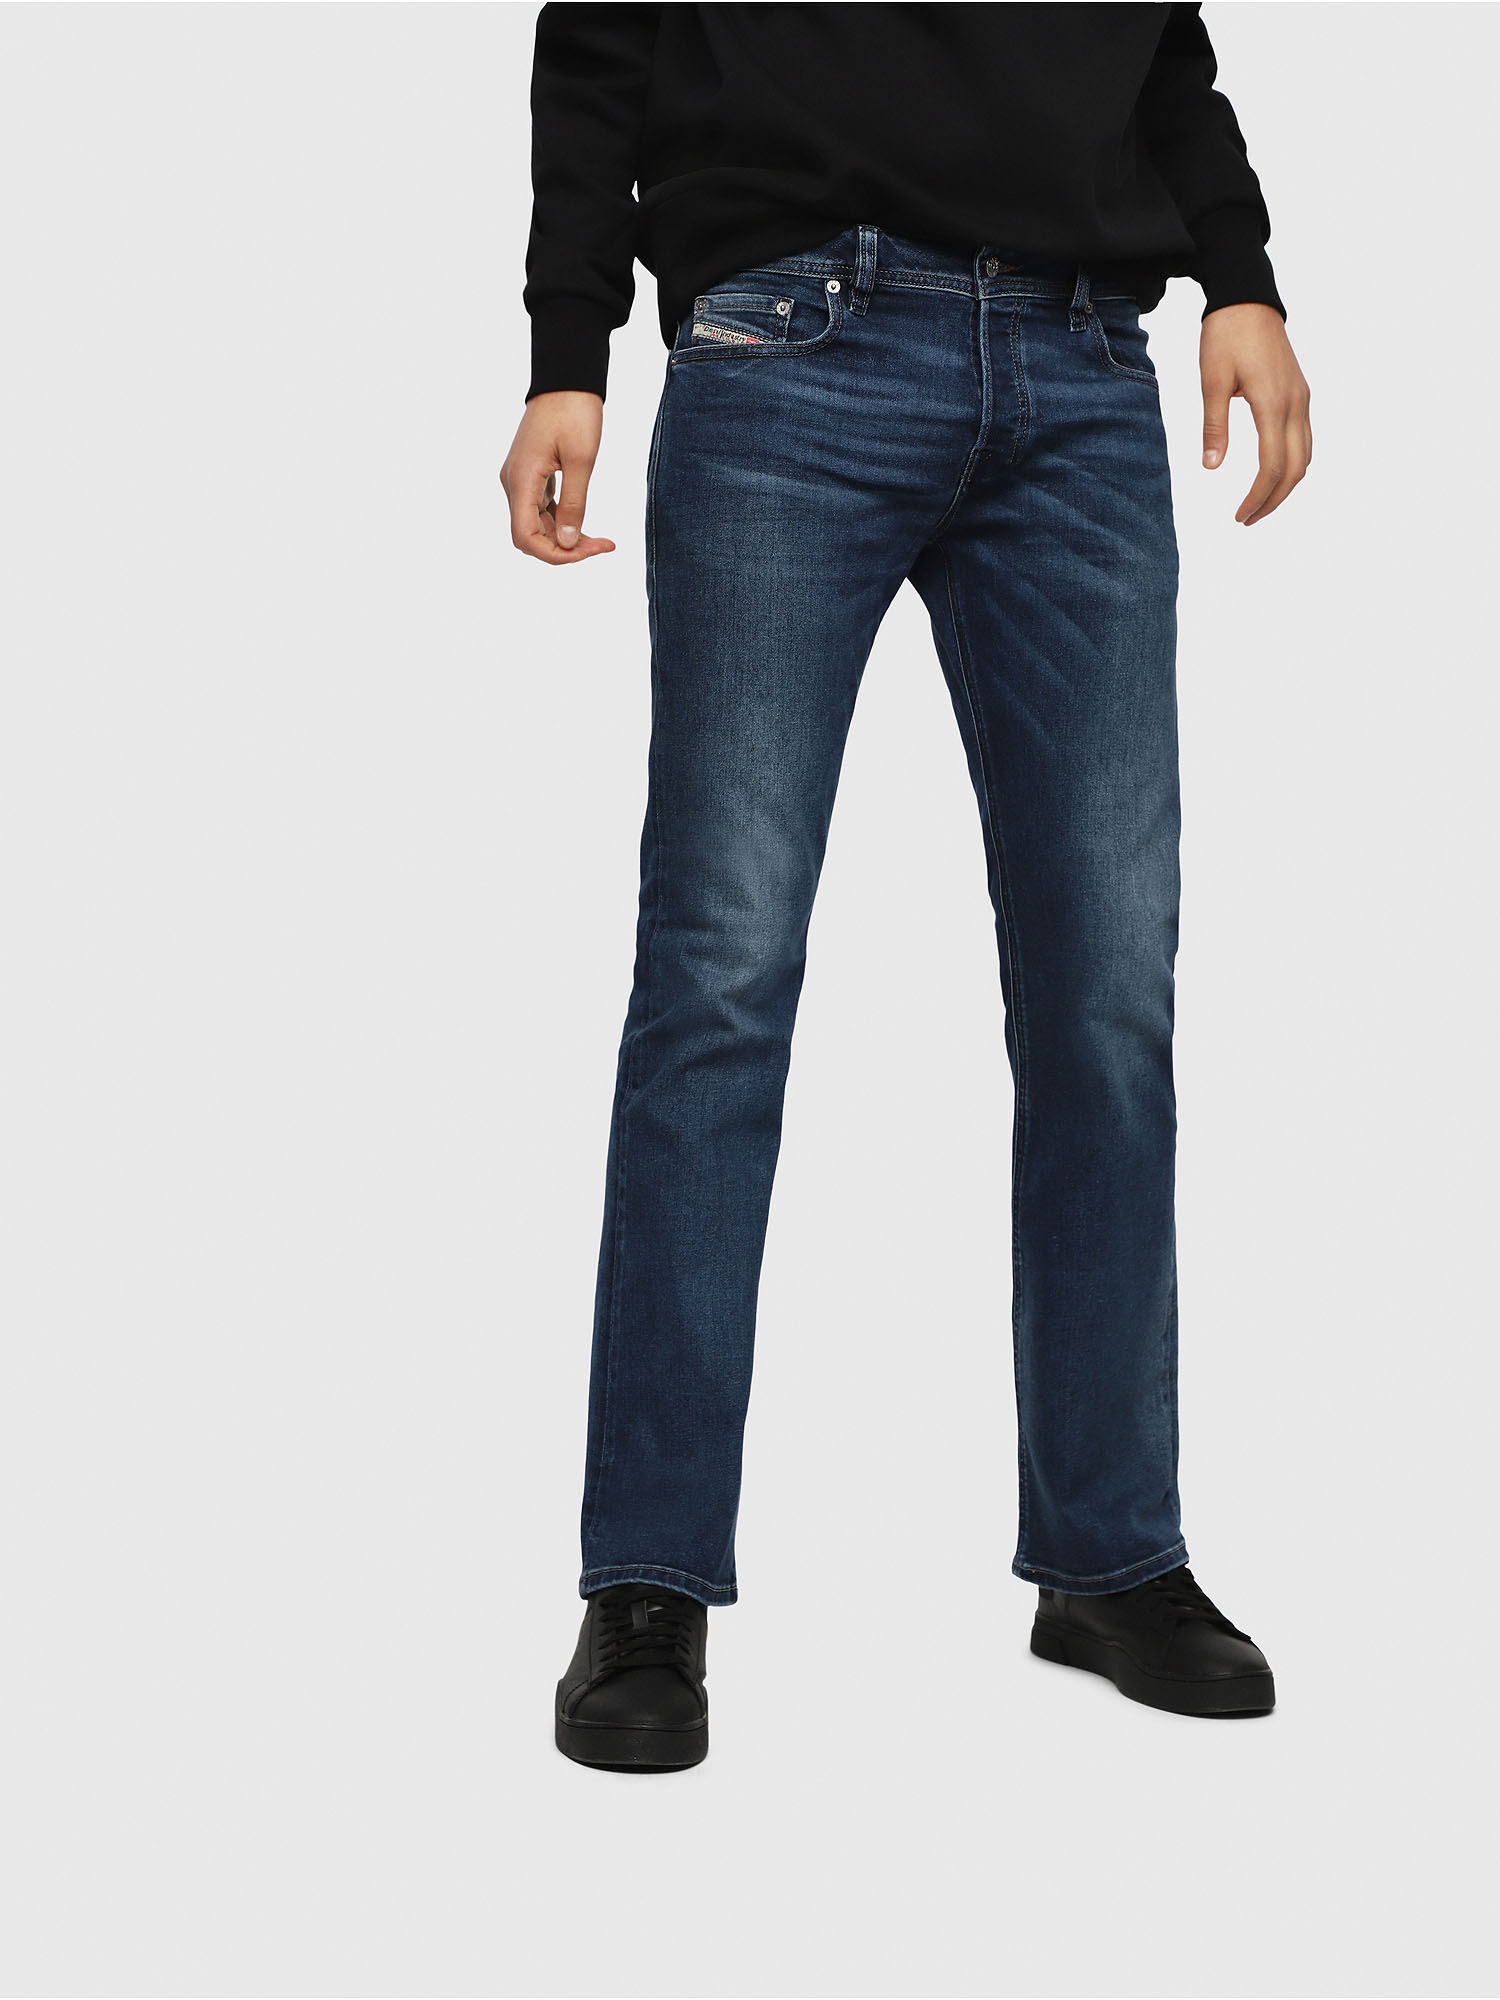 Online shopping of bootcut jeans in india